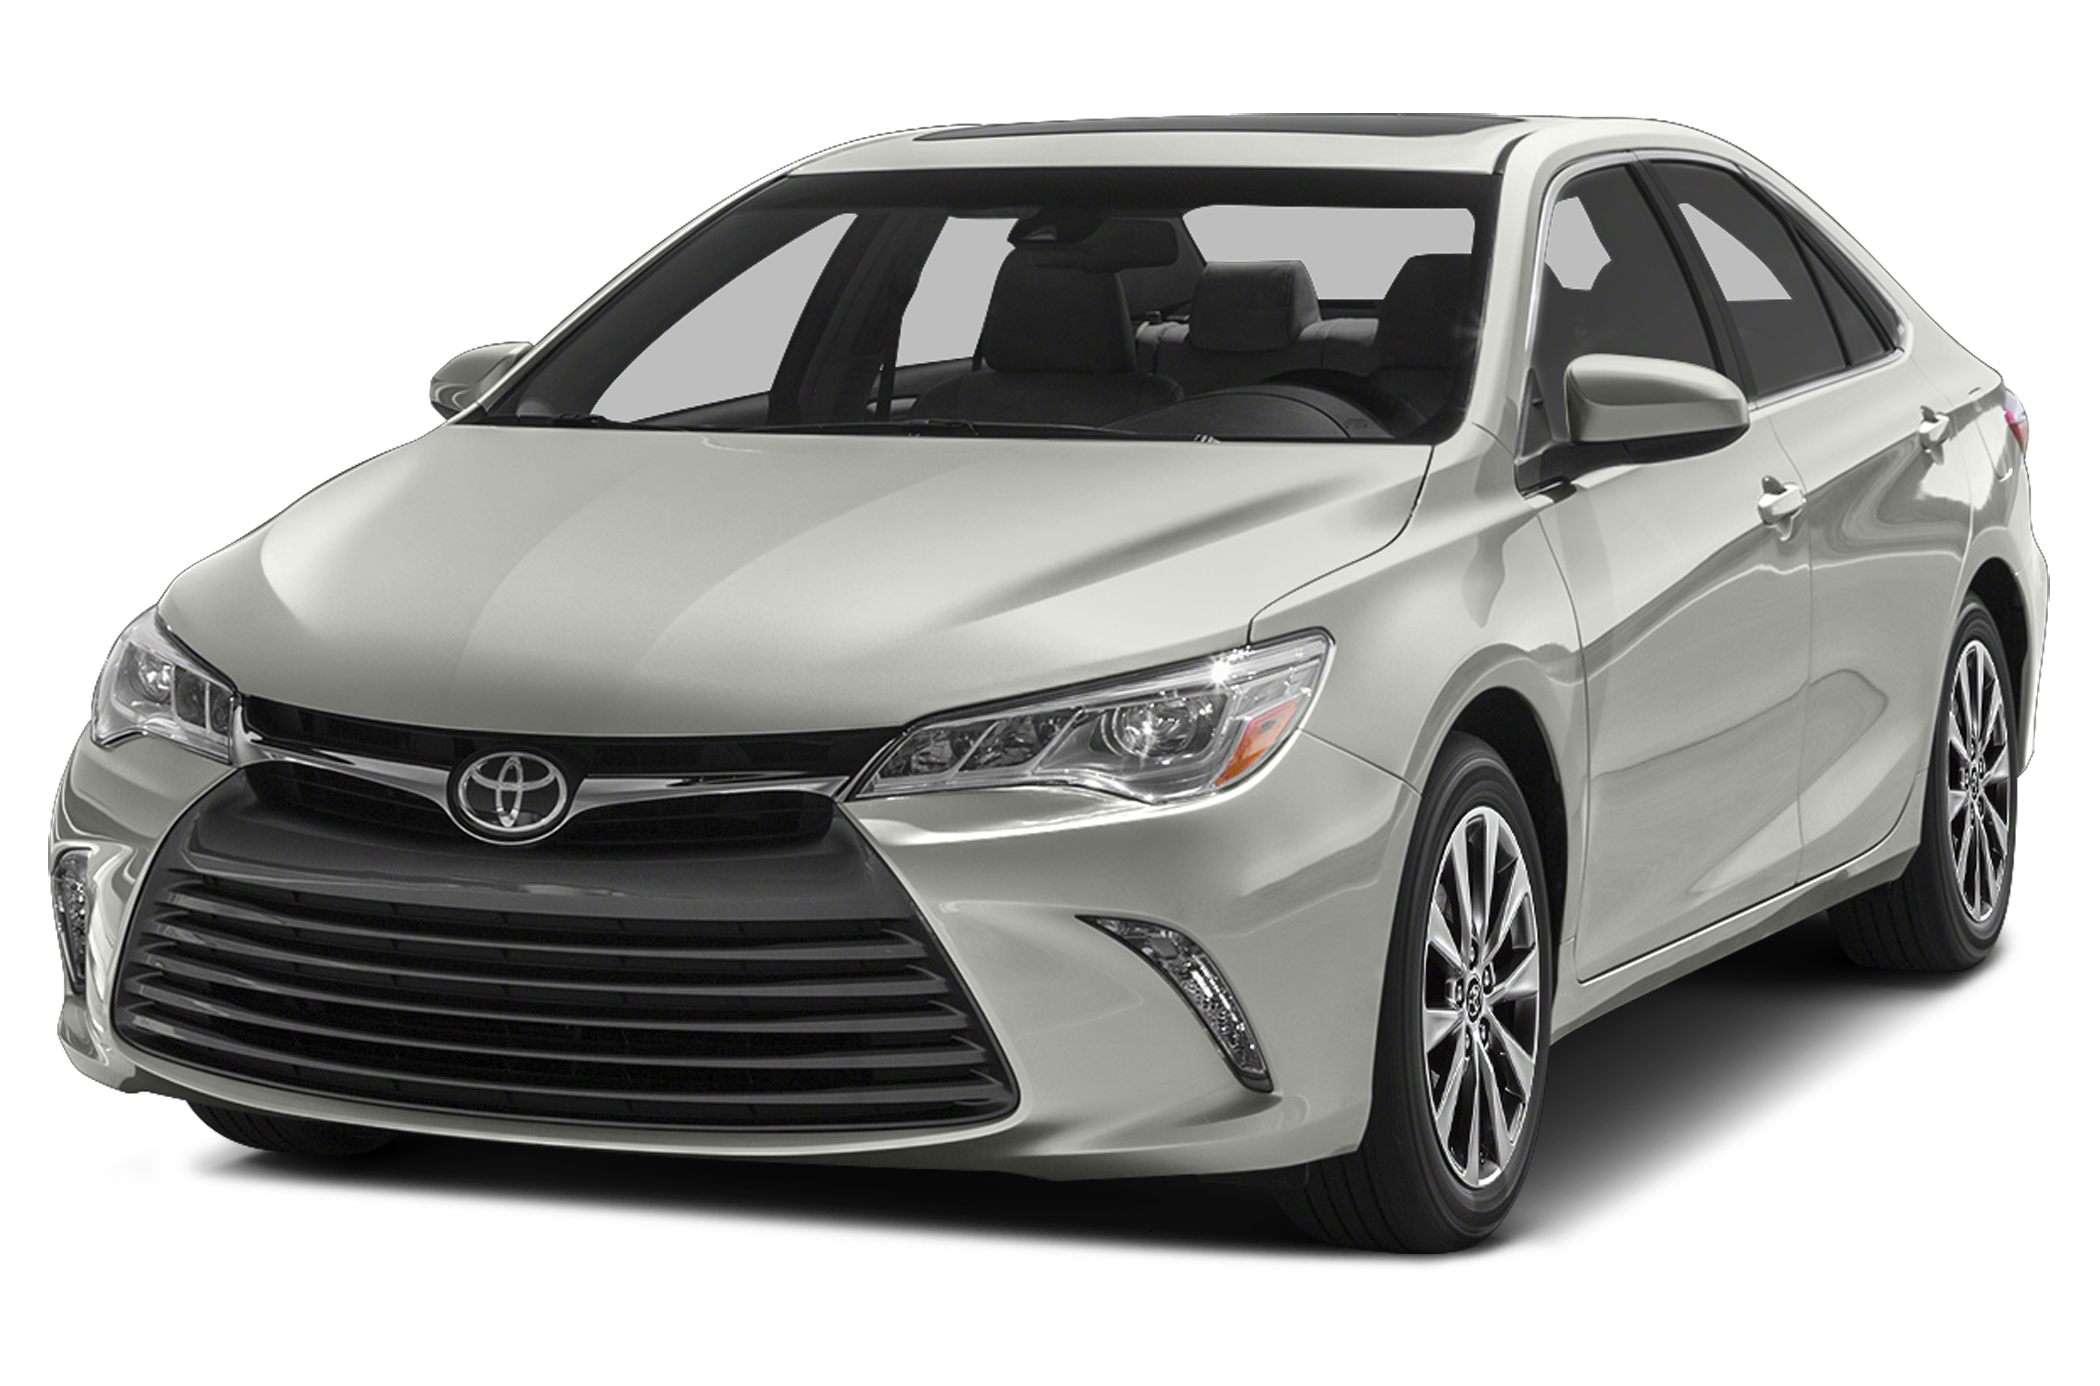 2015 Toyota Camry XLE For more information about this vehicleplease contact Teresa in the Internet